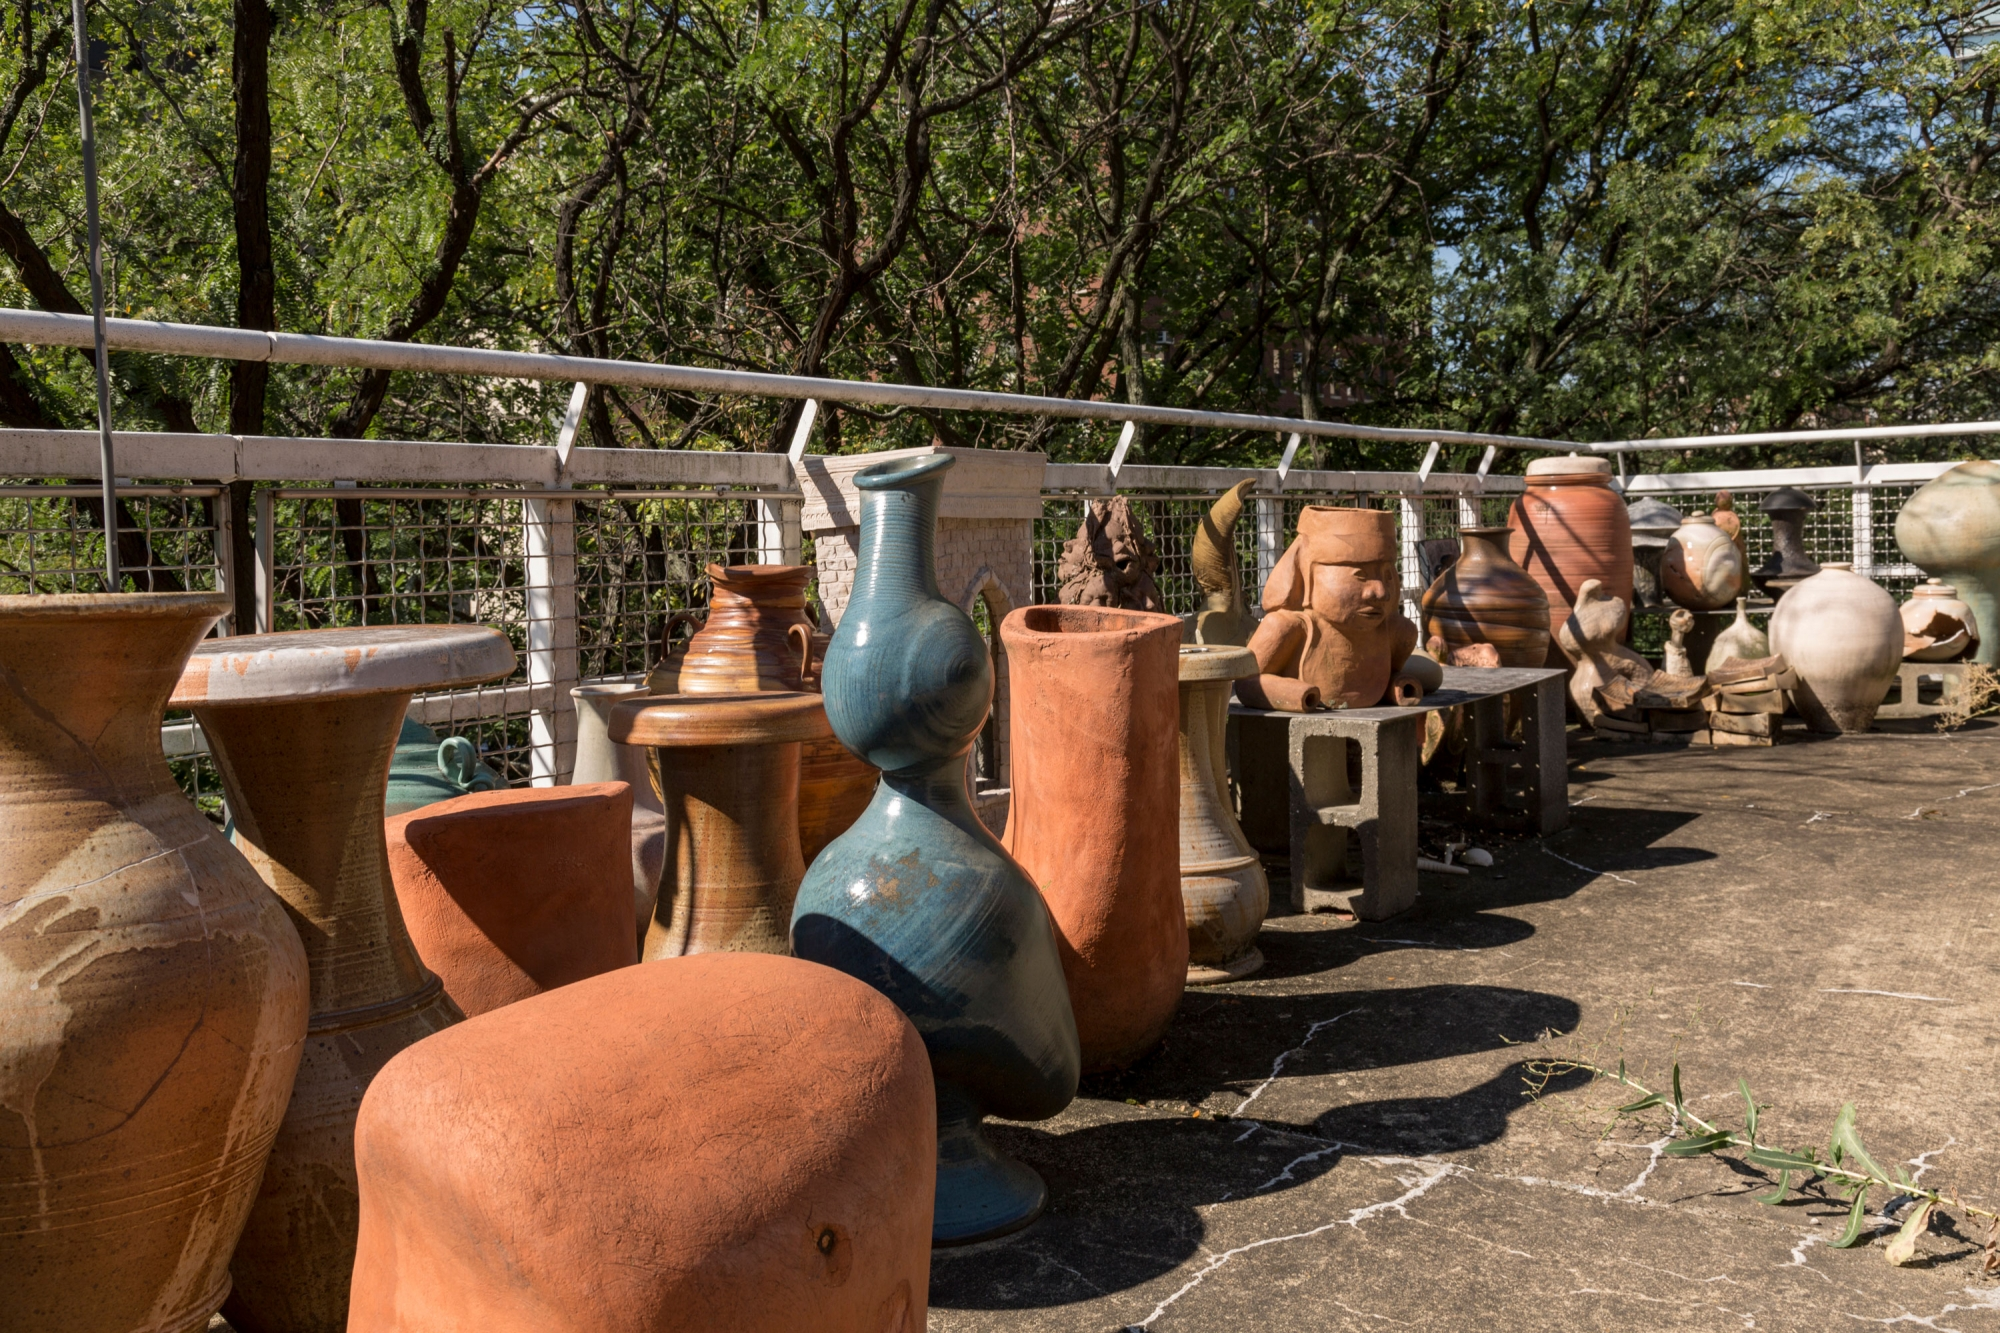 Several rows of large ceramic vases sit alongside a fence